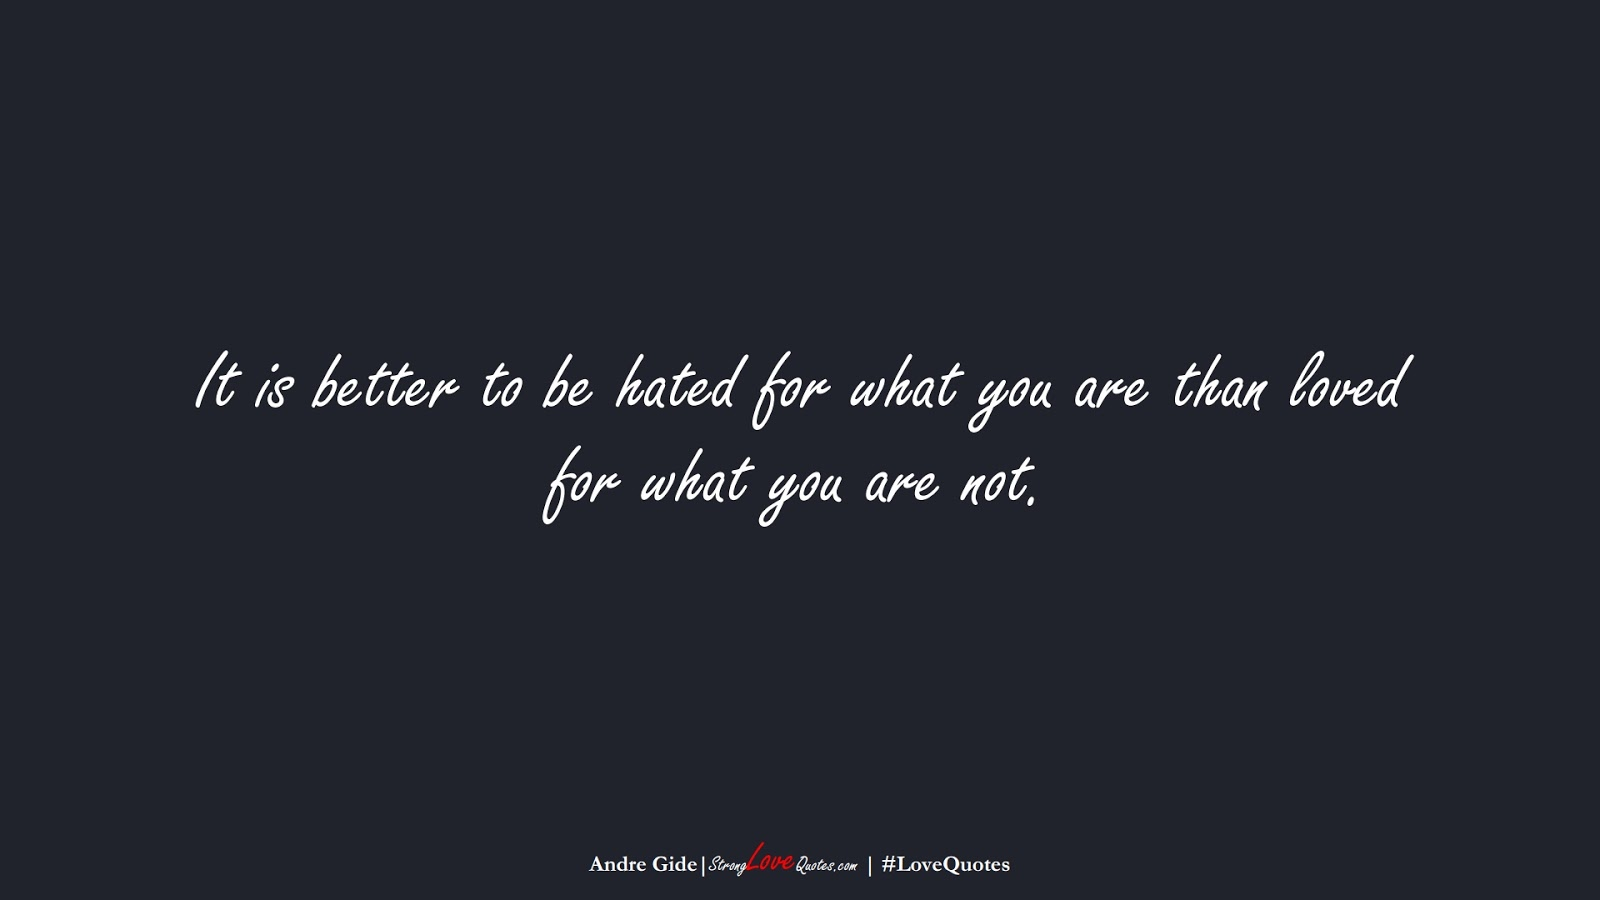 It is better to be hated for what you are than loved for what you are not. (Andre Gide);  #LoveQuotes